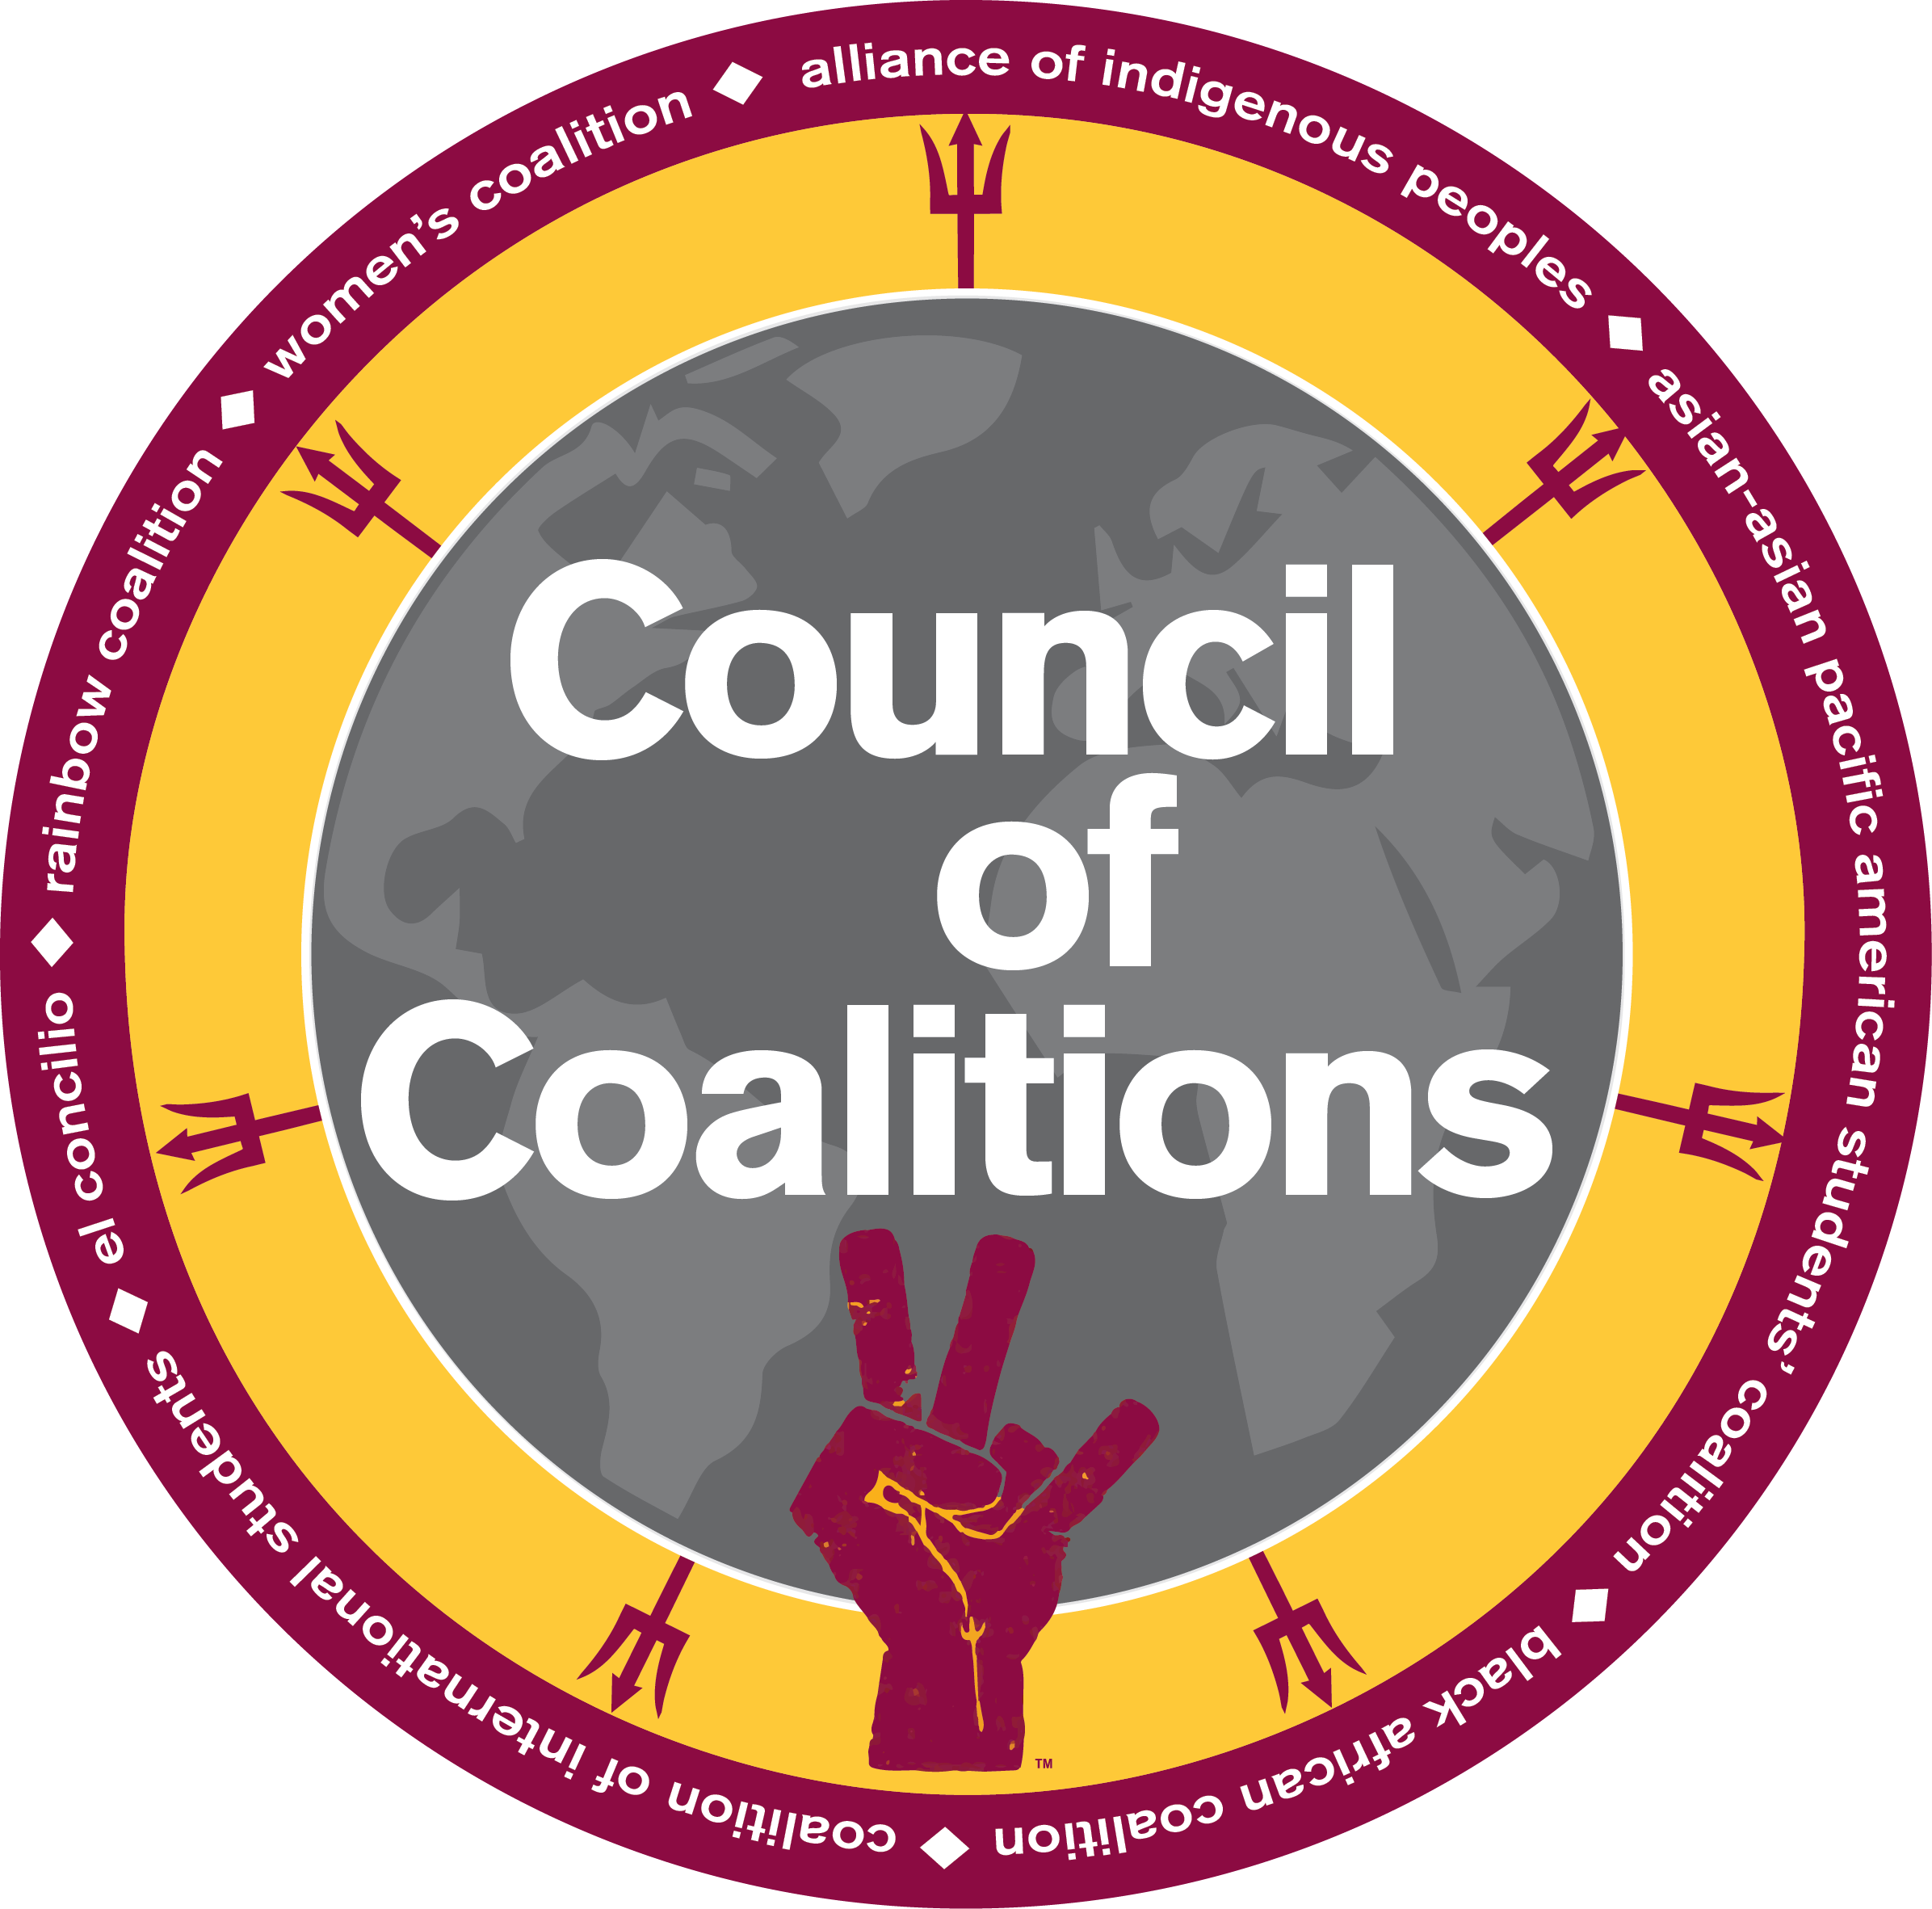 Council of Coalitions logo